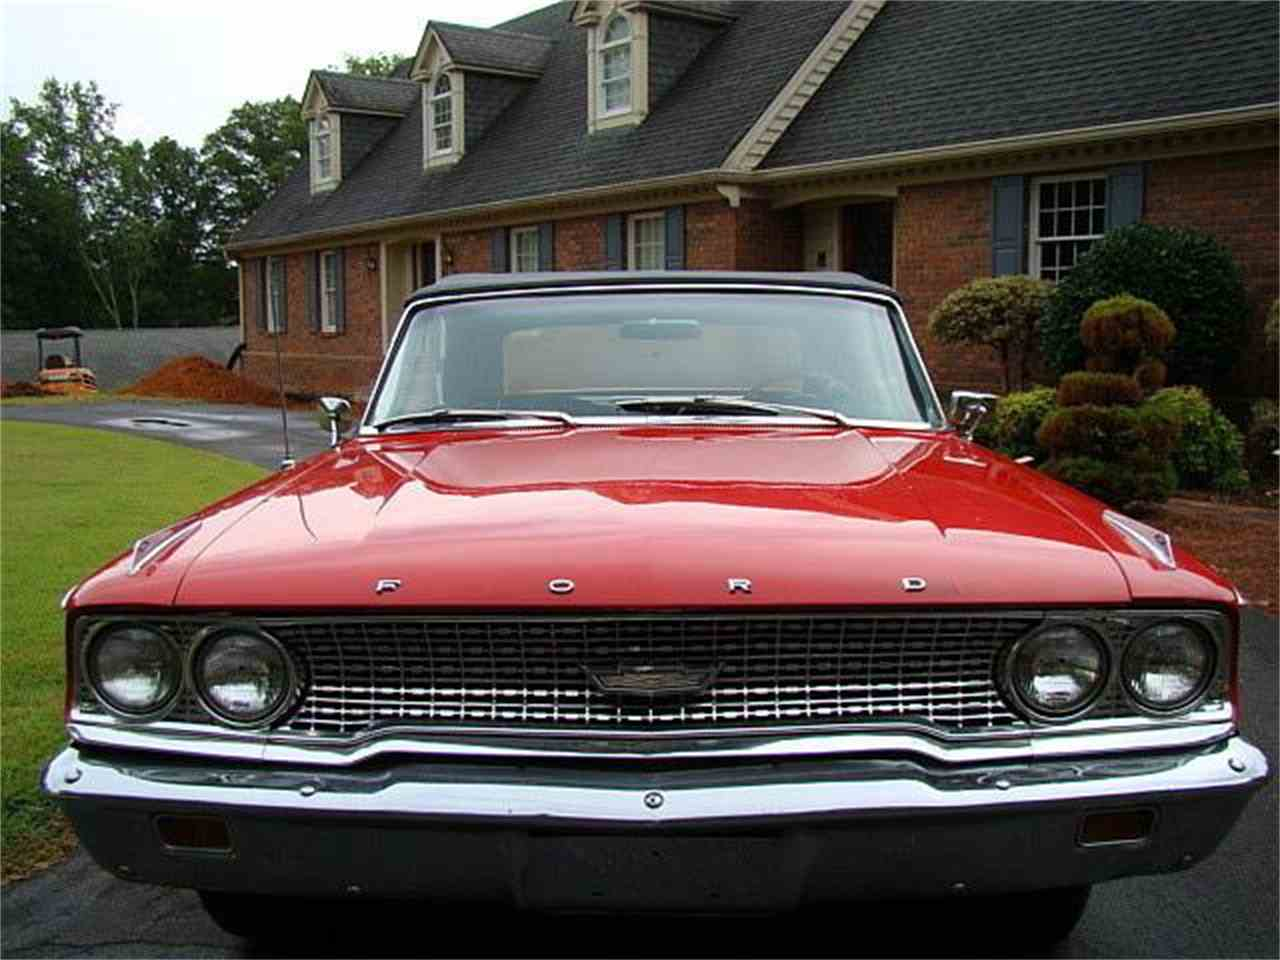 Large Picture of '63 Ford Galaxie 500 located in California - $19,900.00 Offered by Classic Car Guy - LJO9